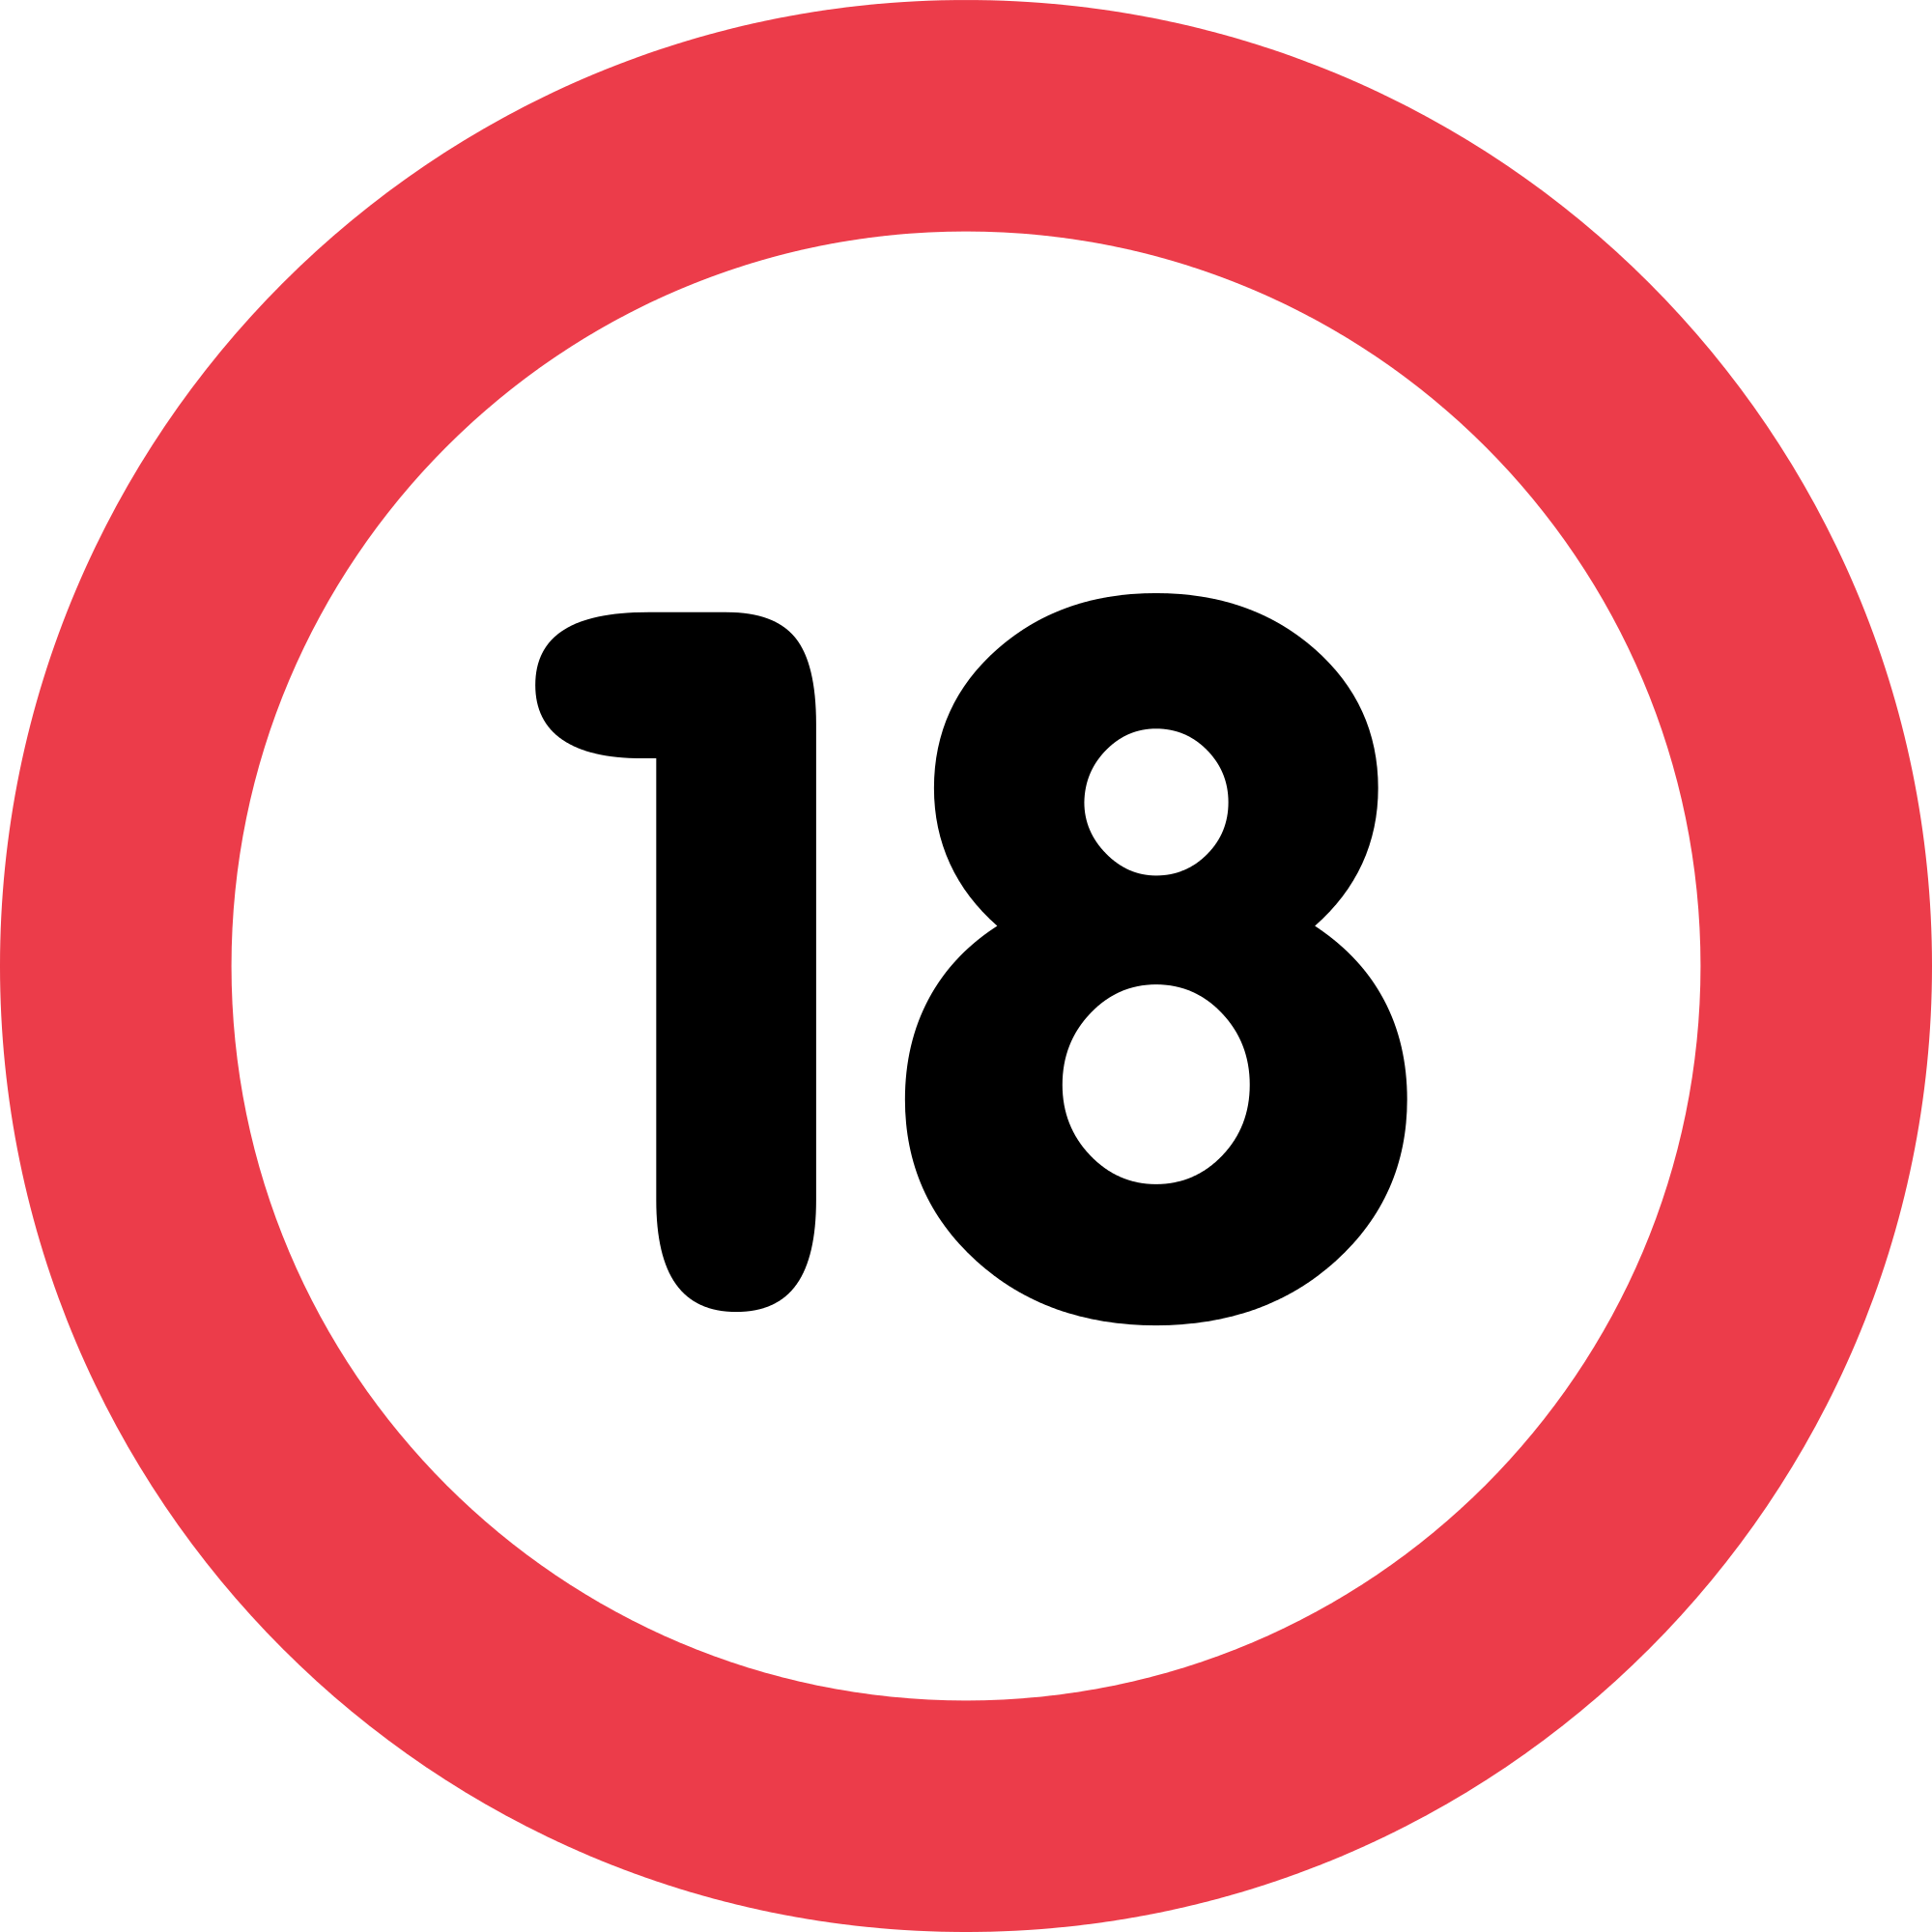 File:18 white, red rounded rectangle.svg - Wikimedia Commons  |18